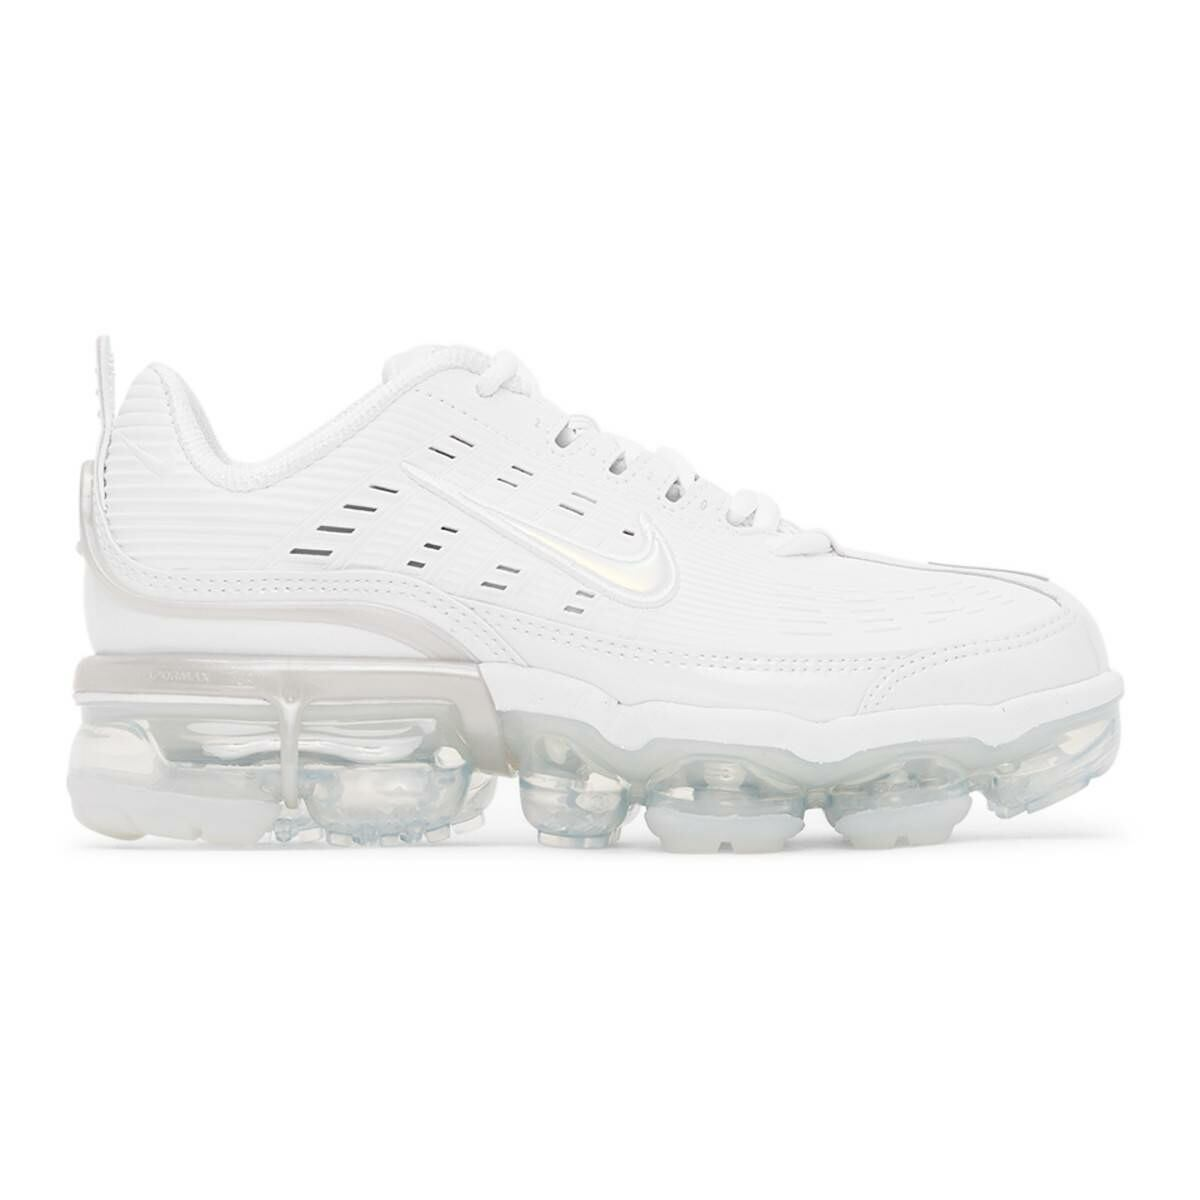 Nike White Vapormax 360 Sneakers Ssense USA WOMEN Women SHOES Womens SNEAKER